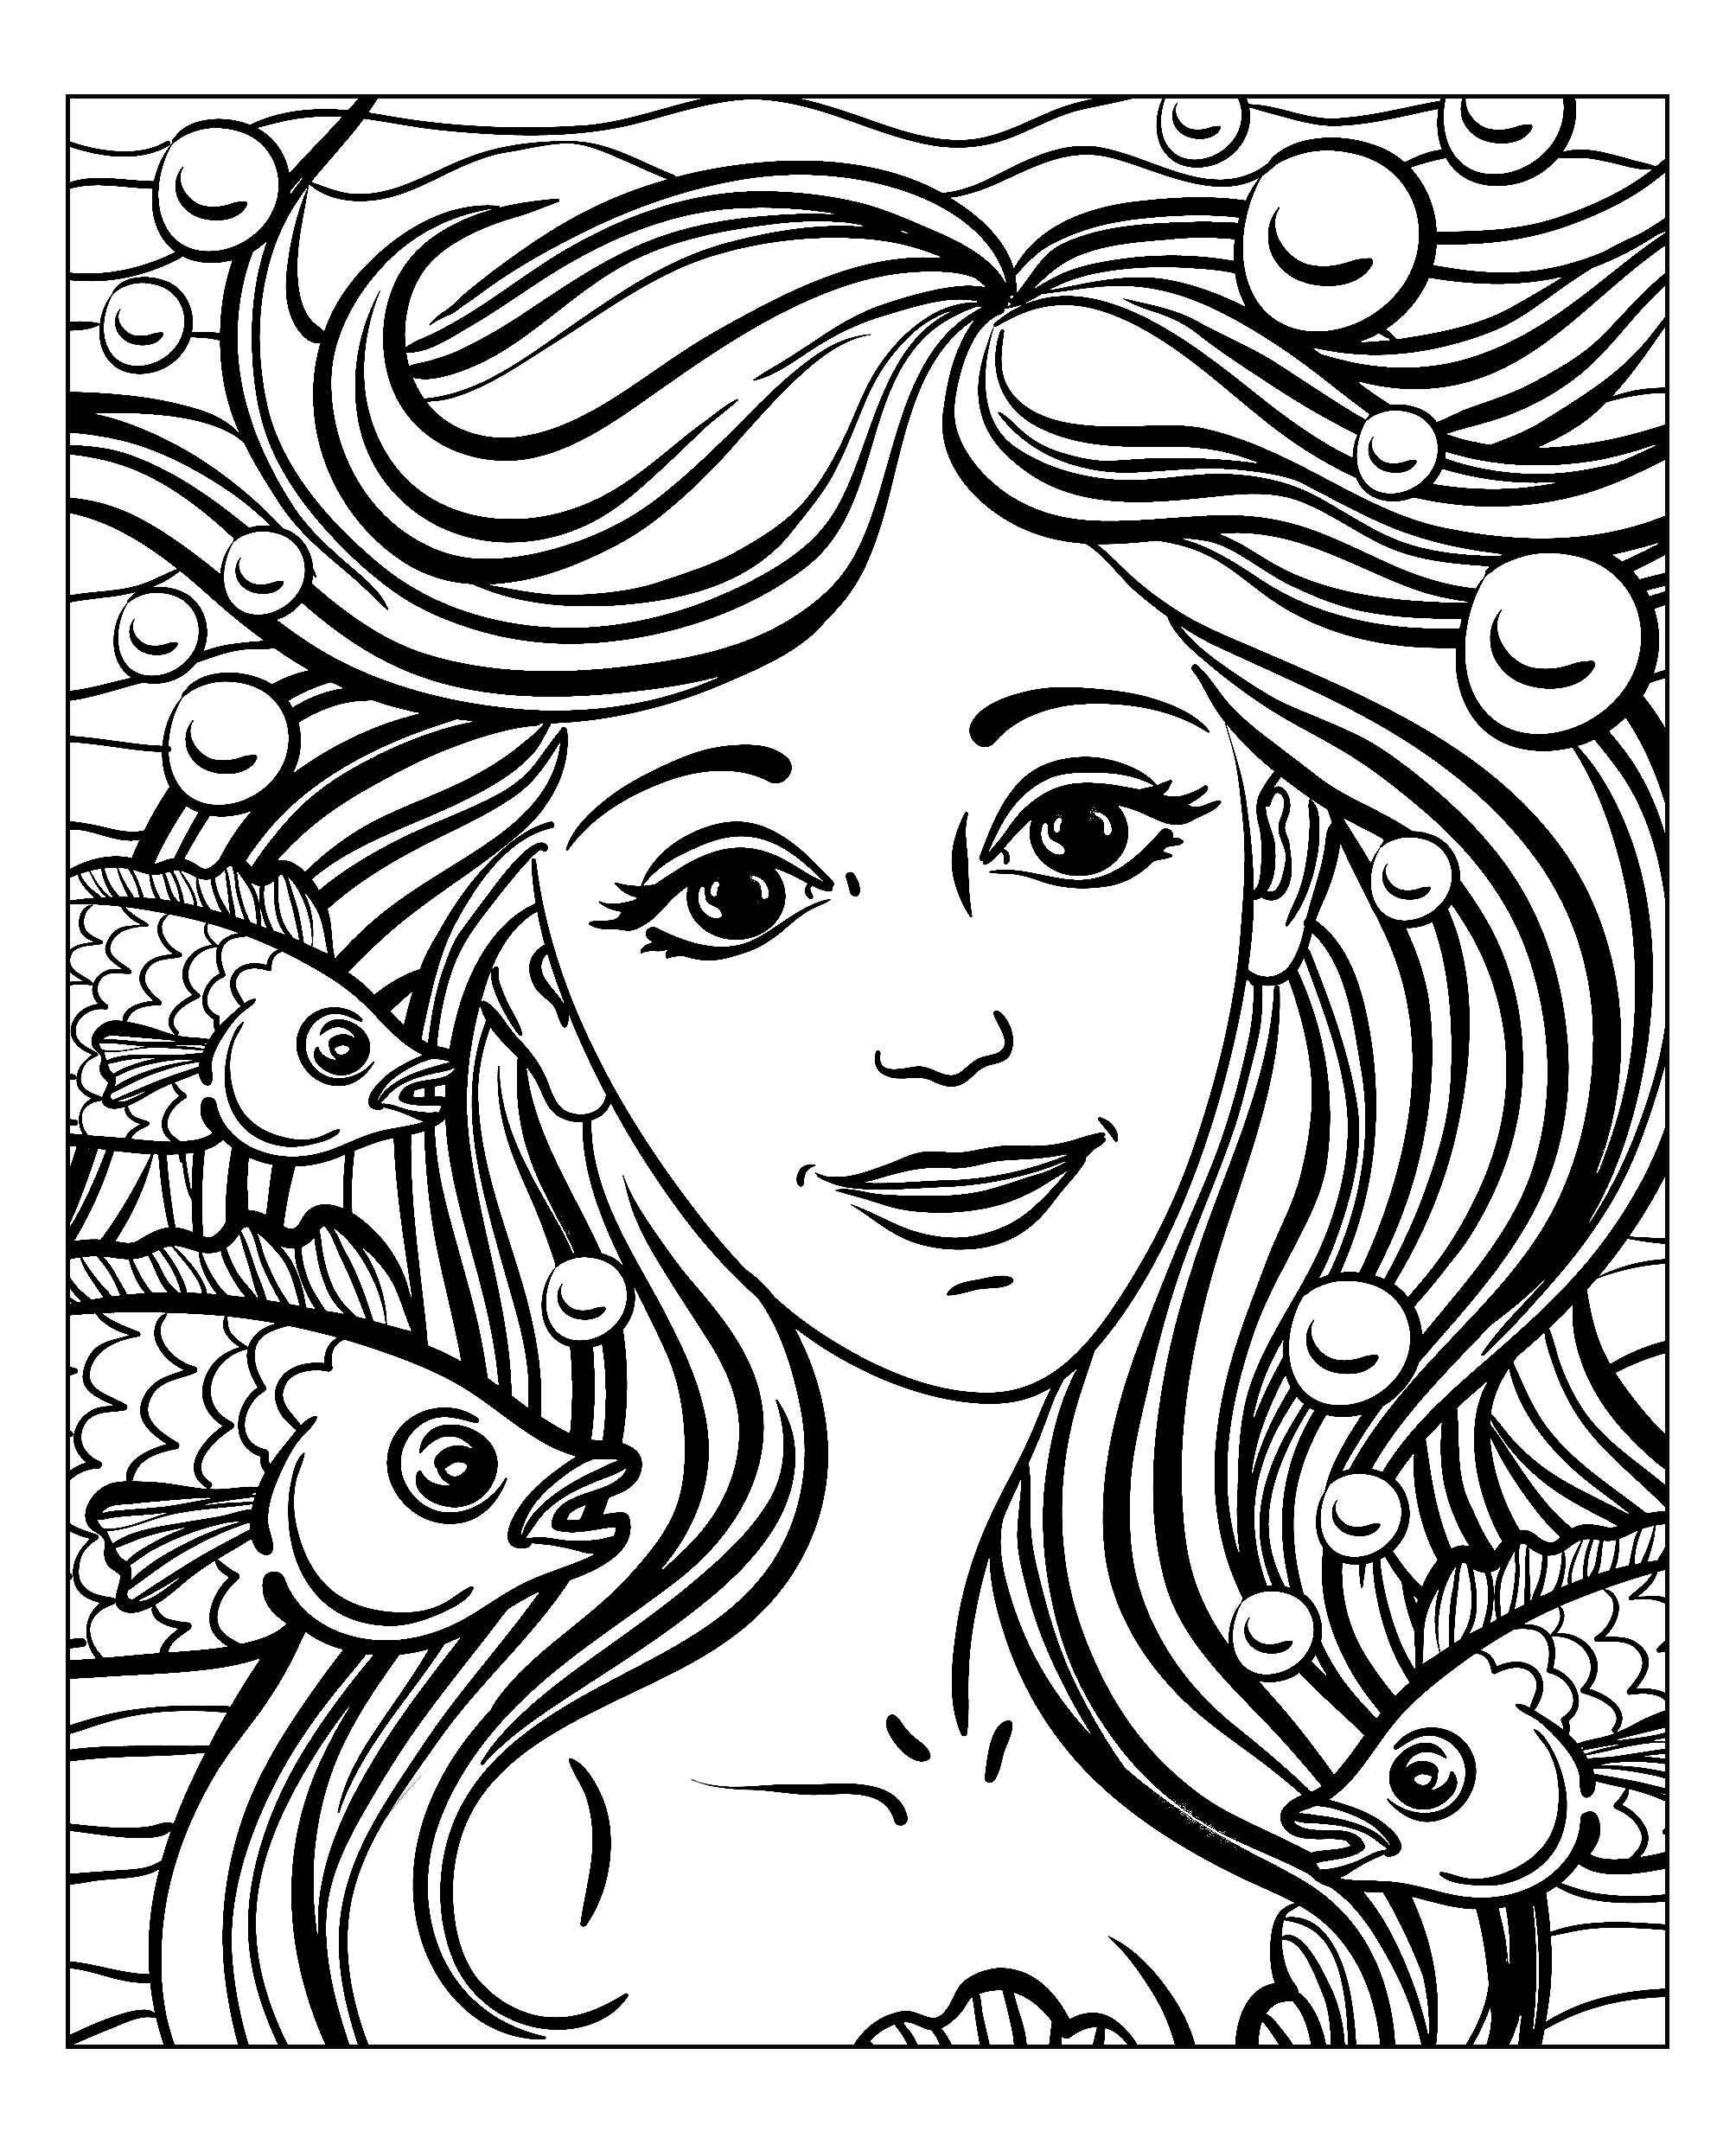 Mermaid beautiful face, exclusive coloring page for adult, by Natuskadpi